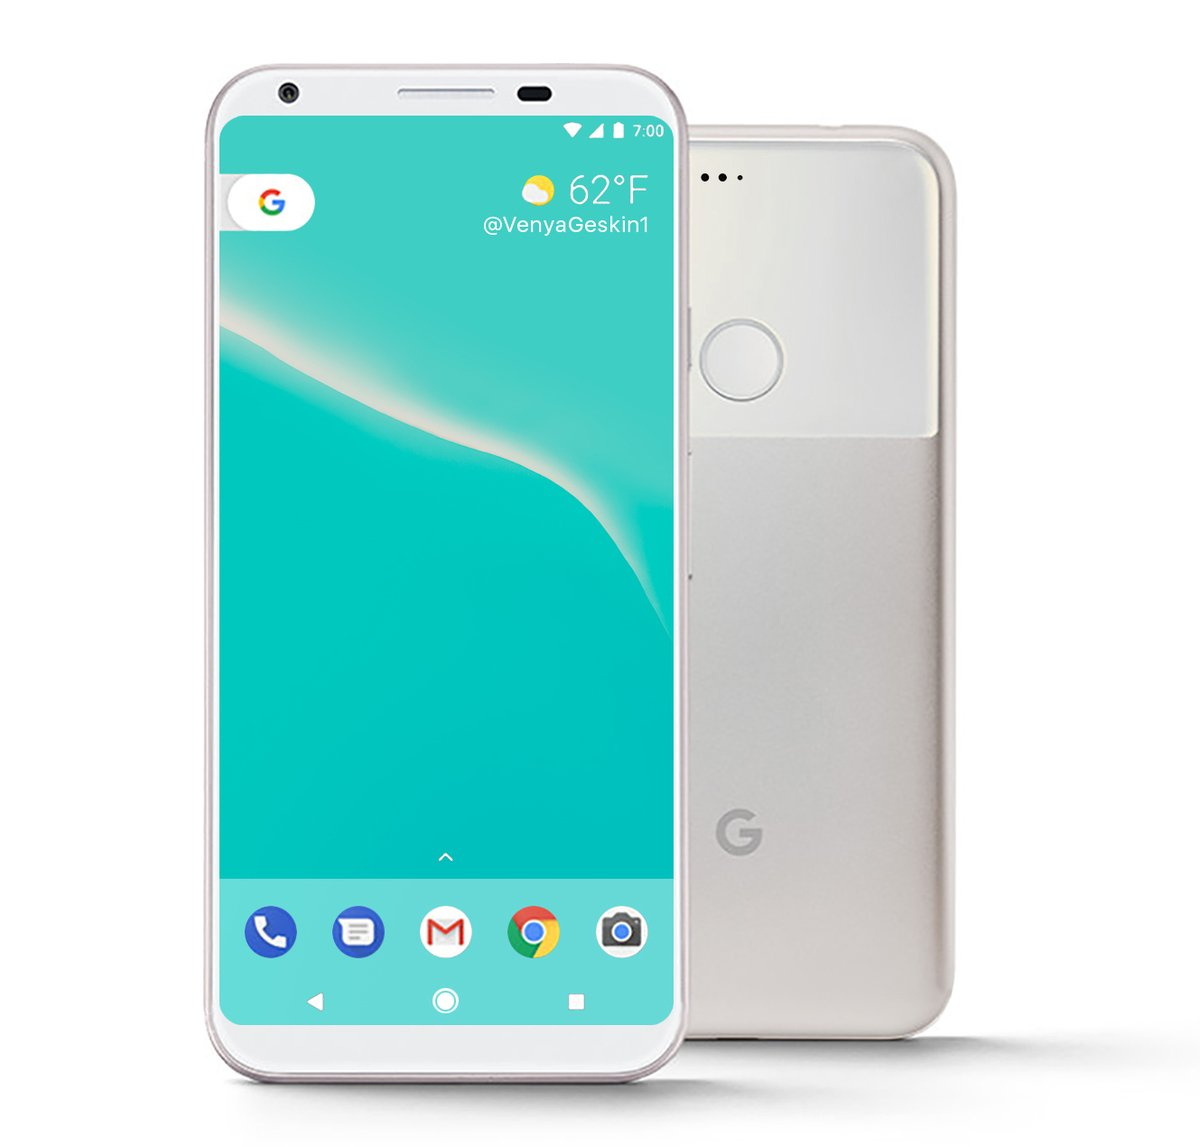 Upcoming Google Pixel smartphones to stay in the premium category